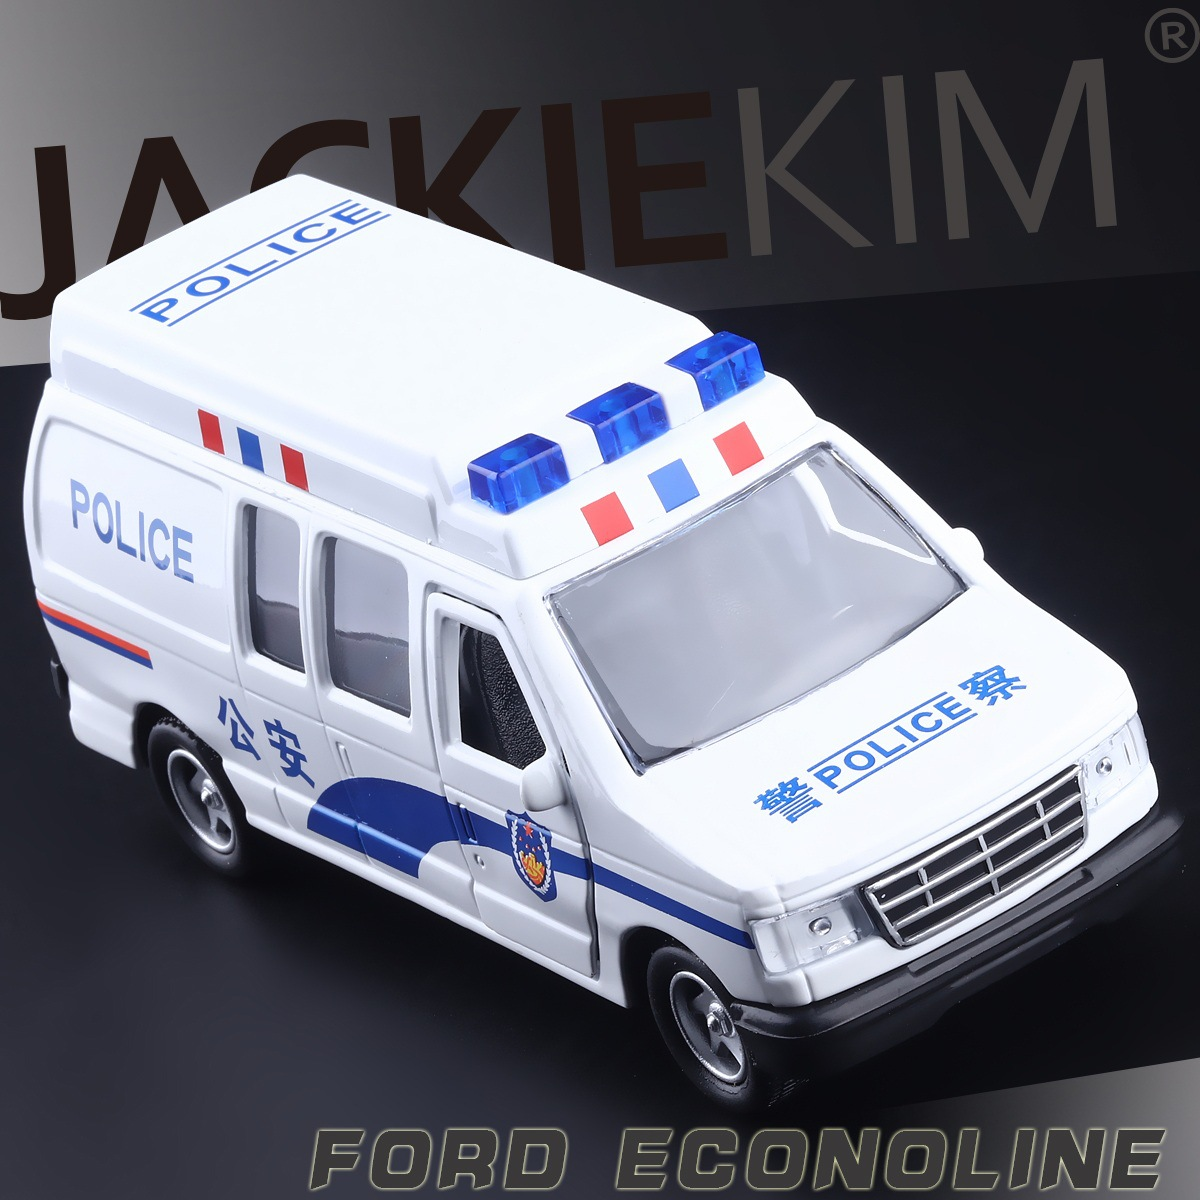 Hot Sale LIFE 1:32 iron car ambulance alloy models Cars Models Kids Toys Wholesale Metal Luxurious Diecasts Vehicles Models(China (Mainland))